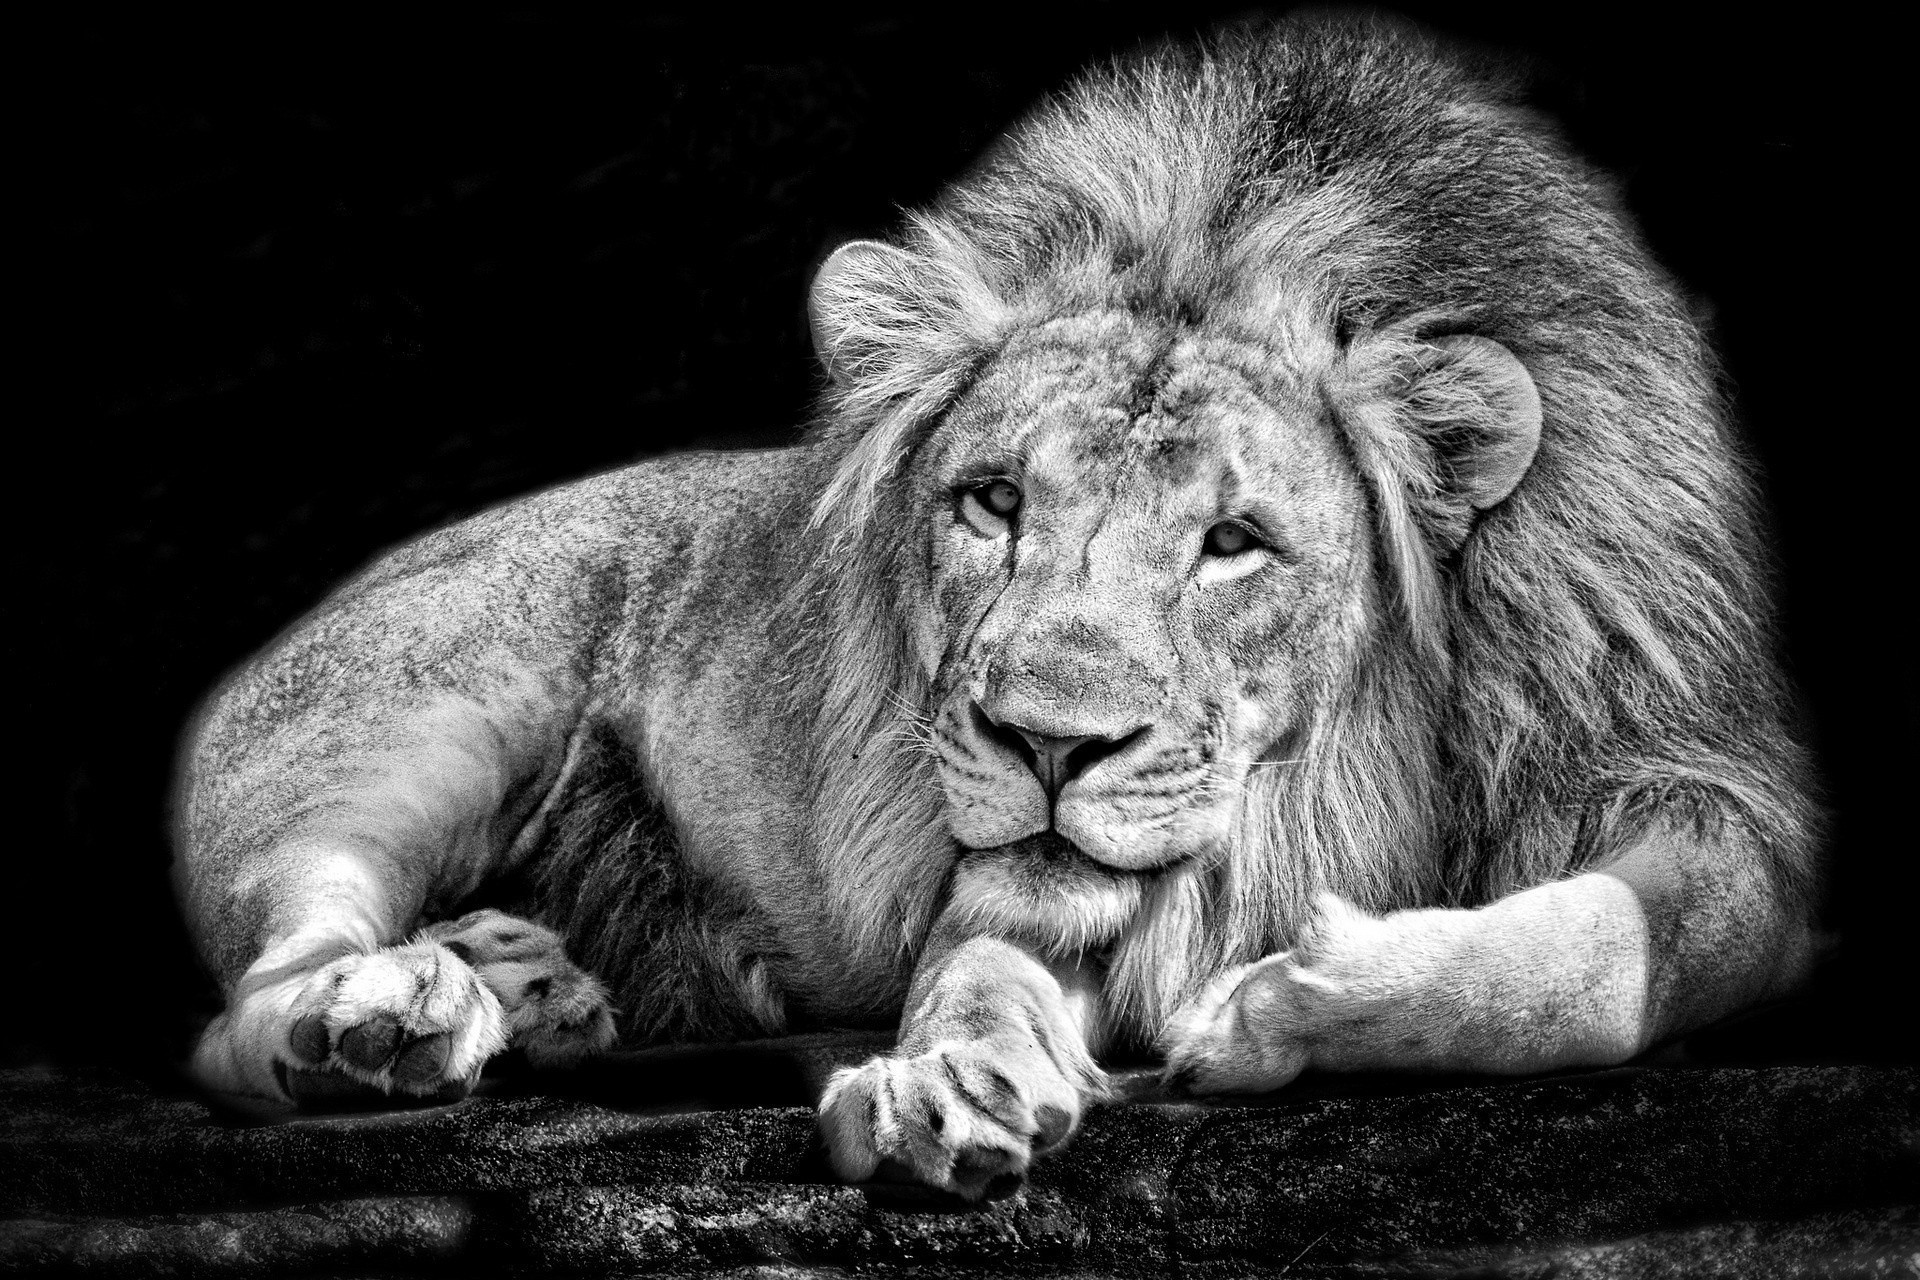 Animals Happy Lion Wallpapers Hd Desktop And Mobile: White Lion Wallpapers (63+ Pictures